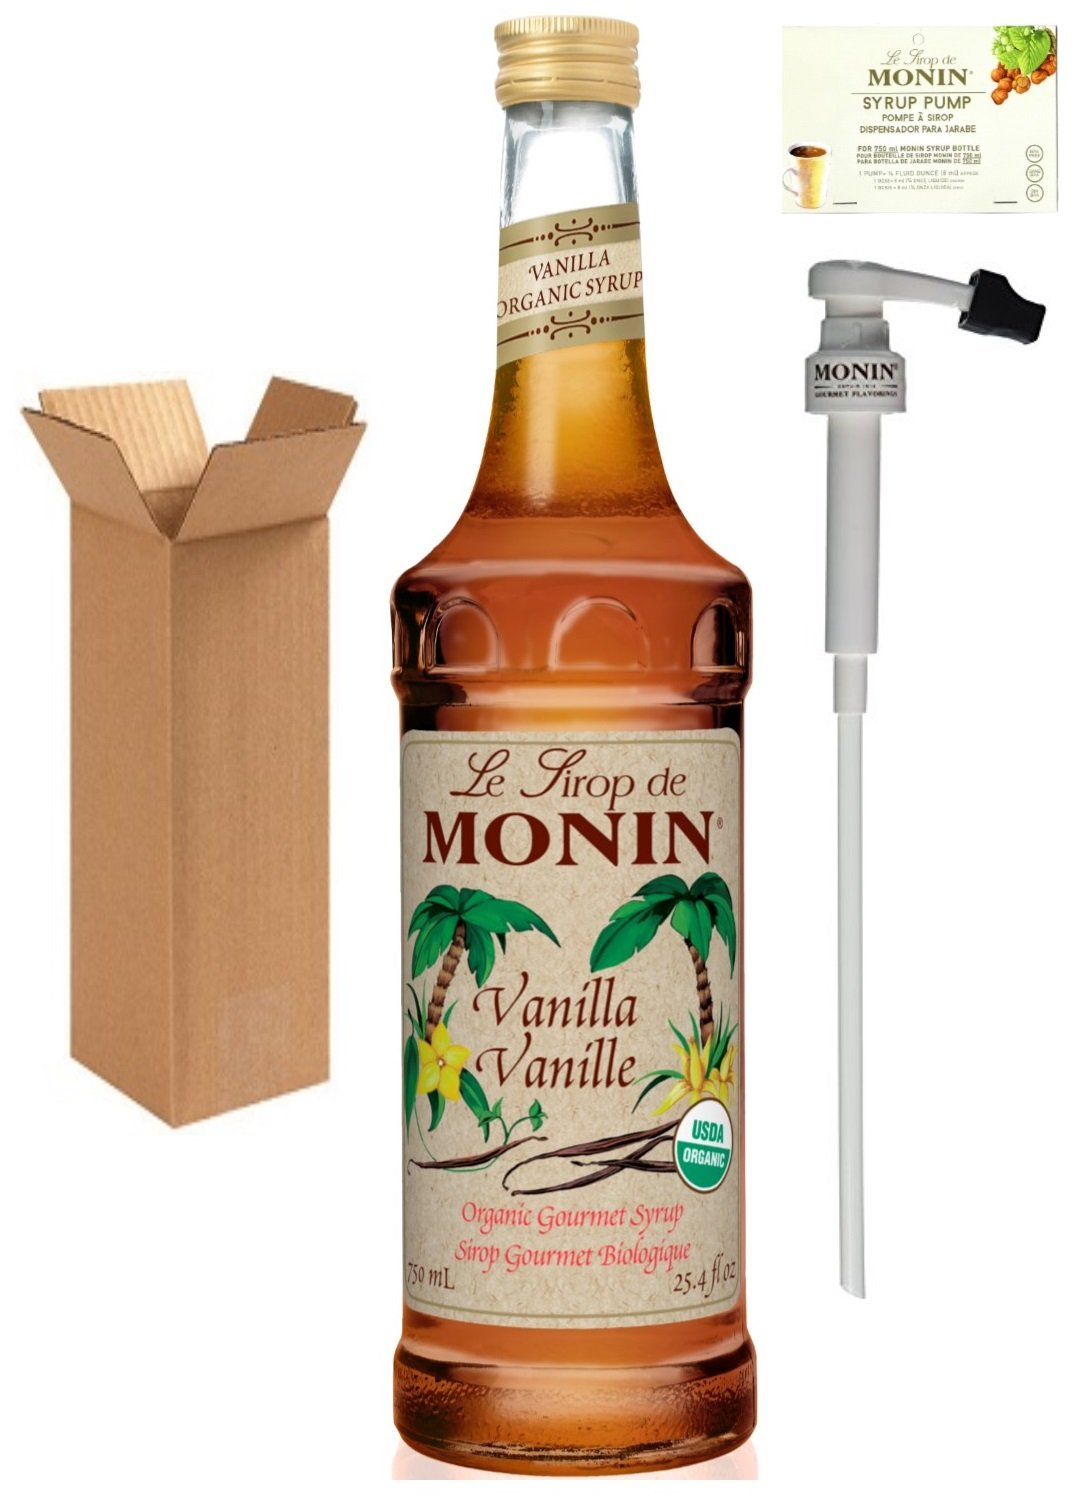 Monin Organic Vanilla Syrup, 25.4-Ounce (750 ml) Glass Bottle with Monin